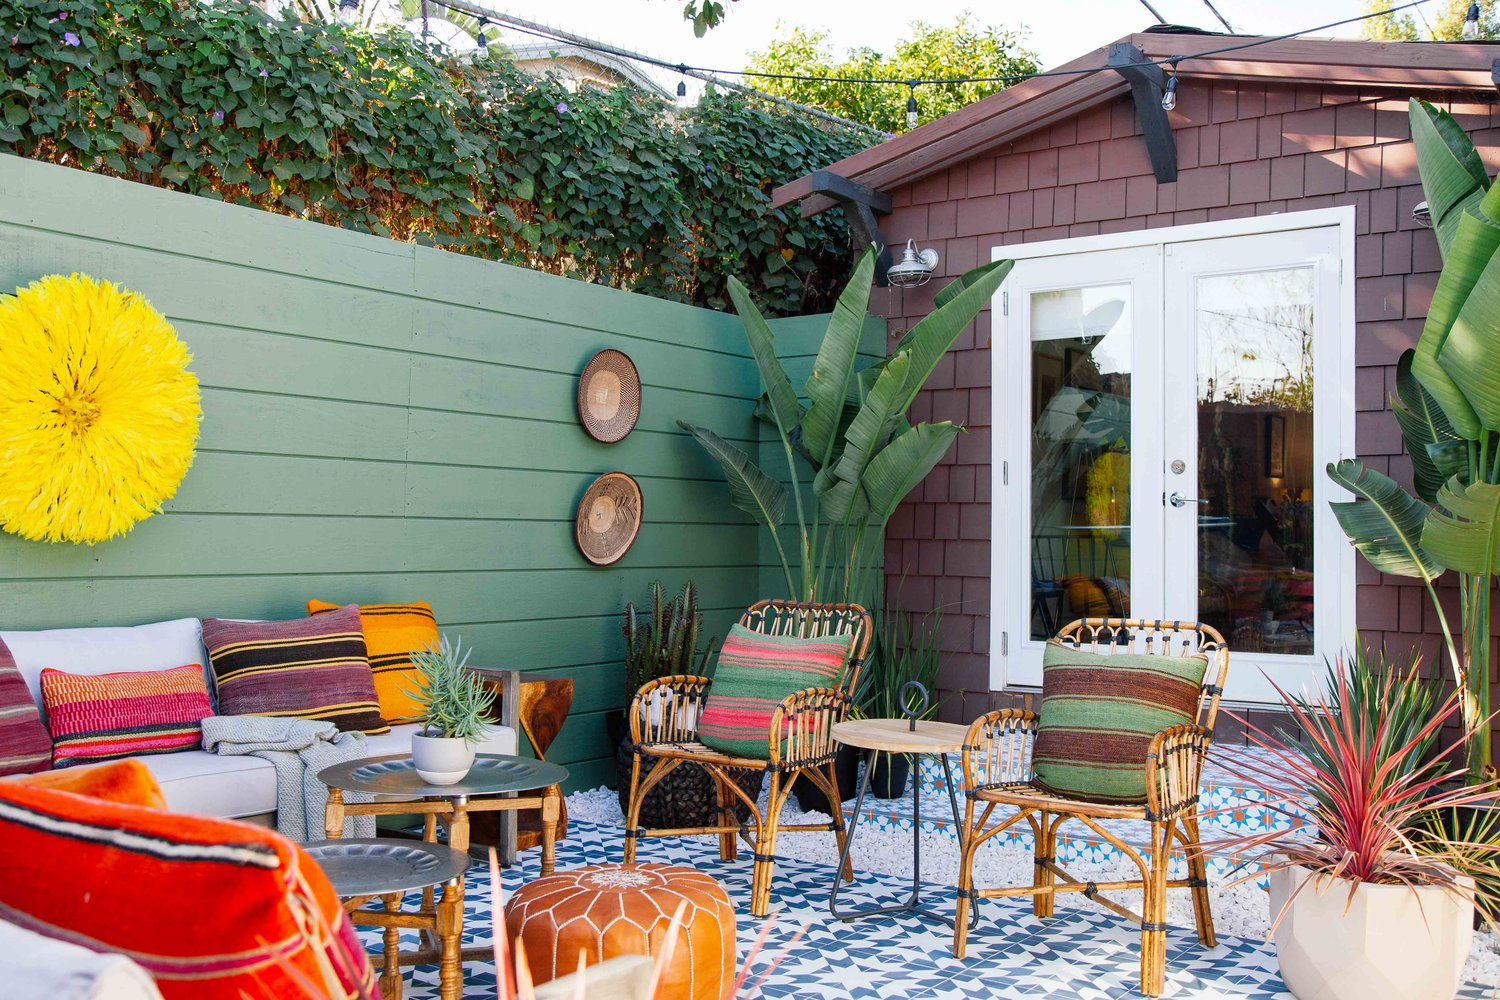 8 Genius Small Patio Ideas to Help You Design Your Dream Space